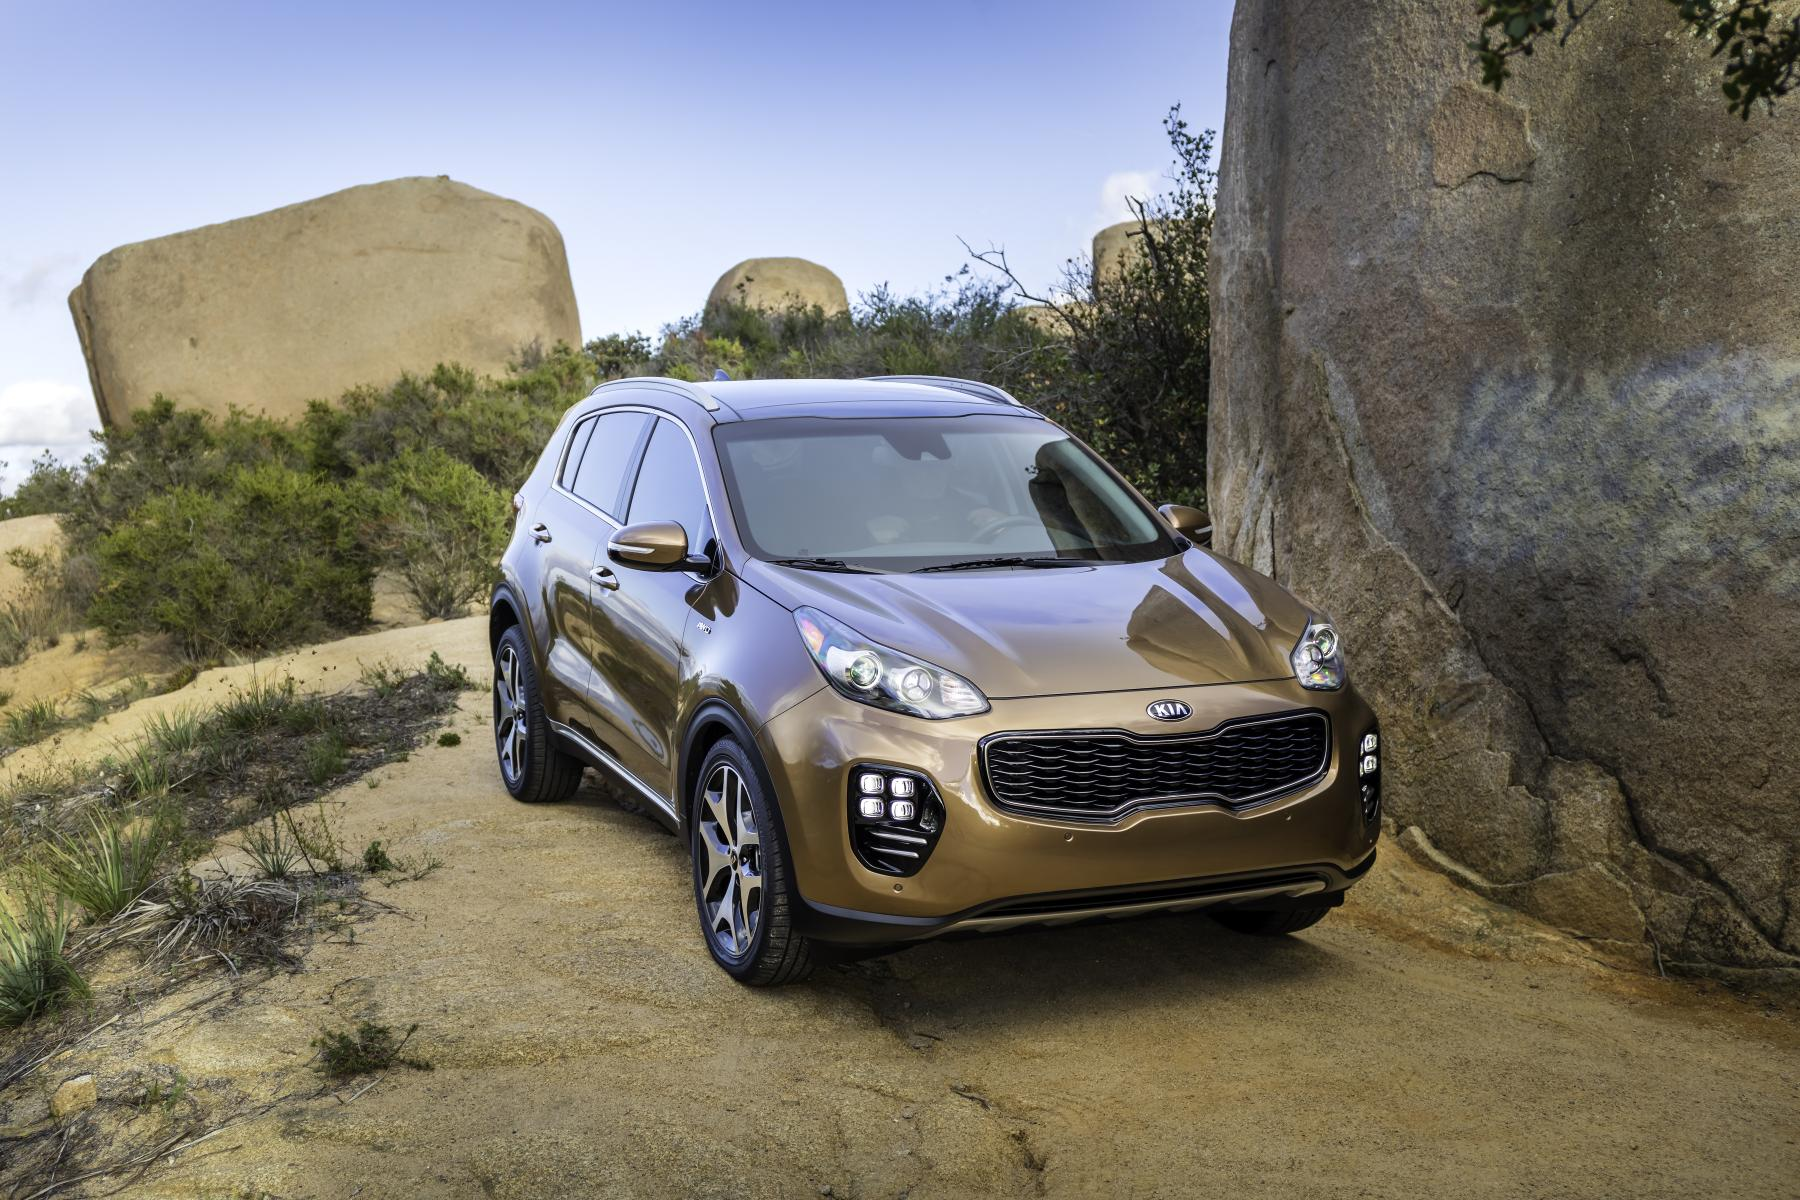 2017 kia sportage makes north american debut autoevolution. Black Bedroom Furniture Sets. Home Design Ideas